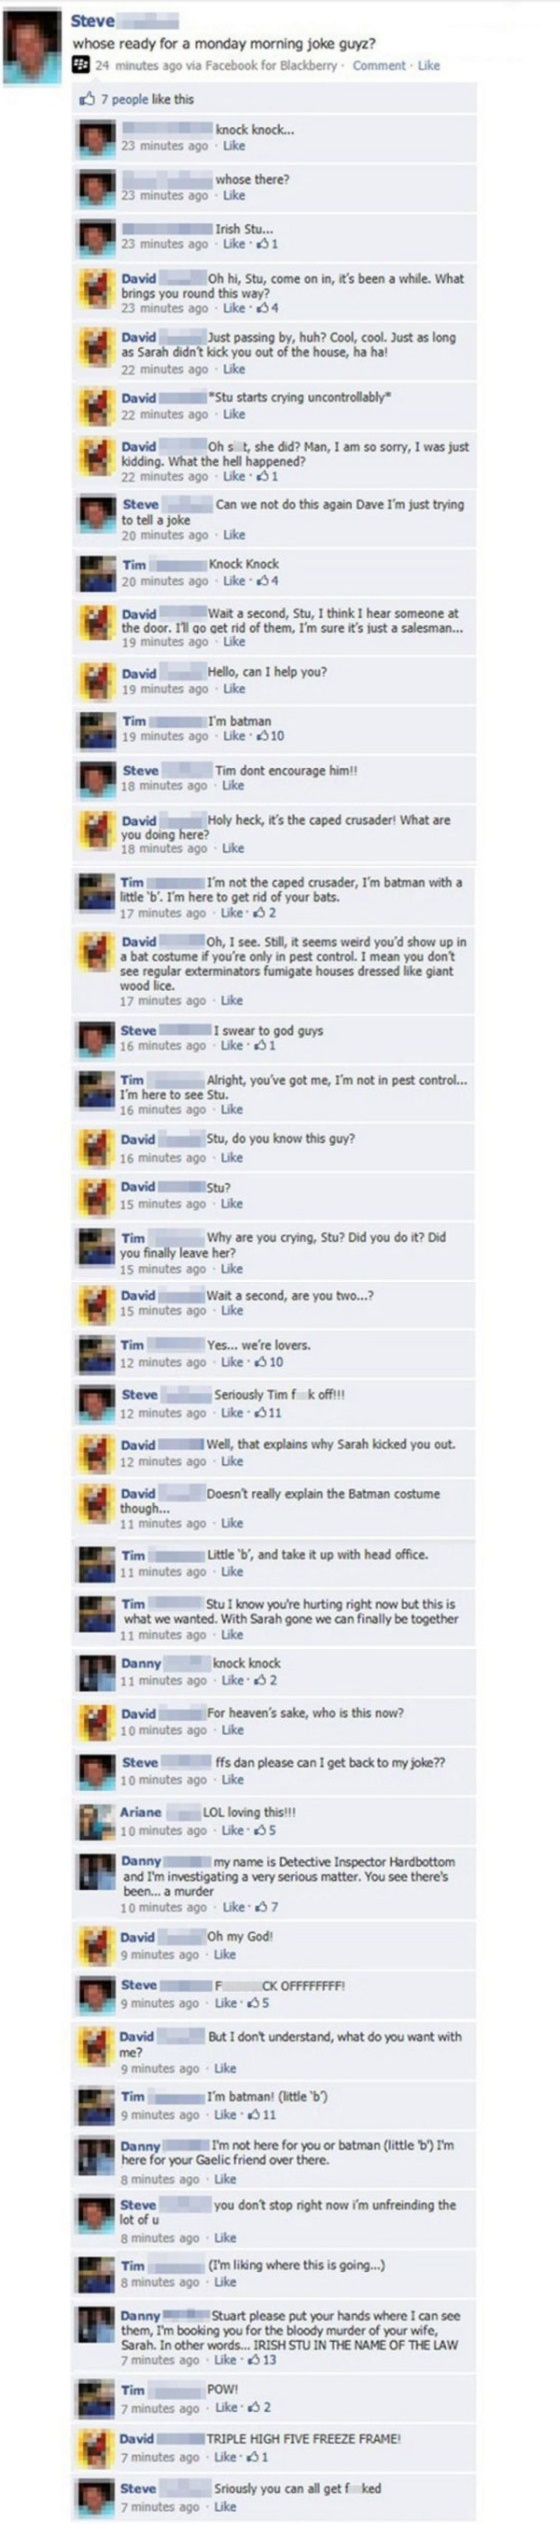 Facebook Knock, Knock Joke Viral